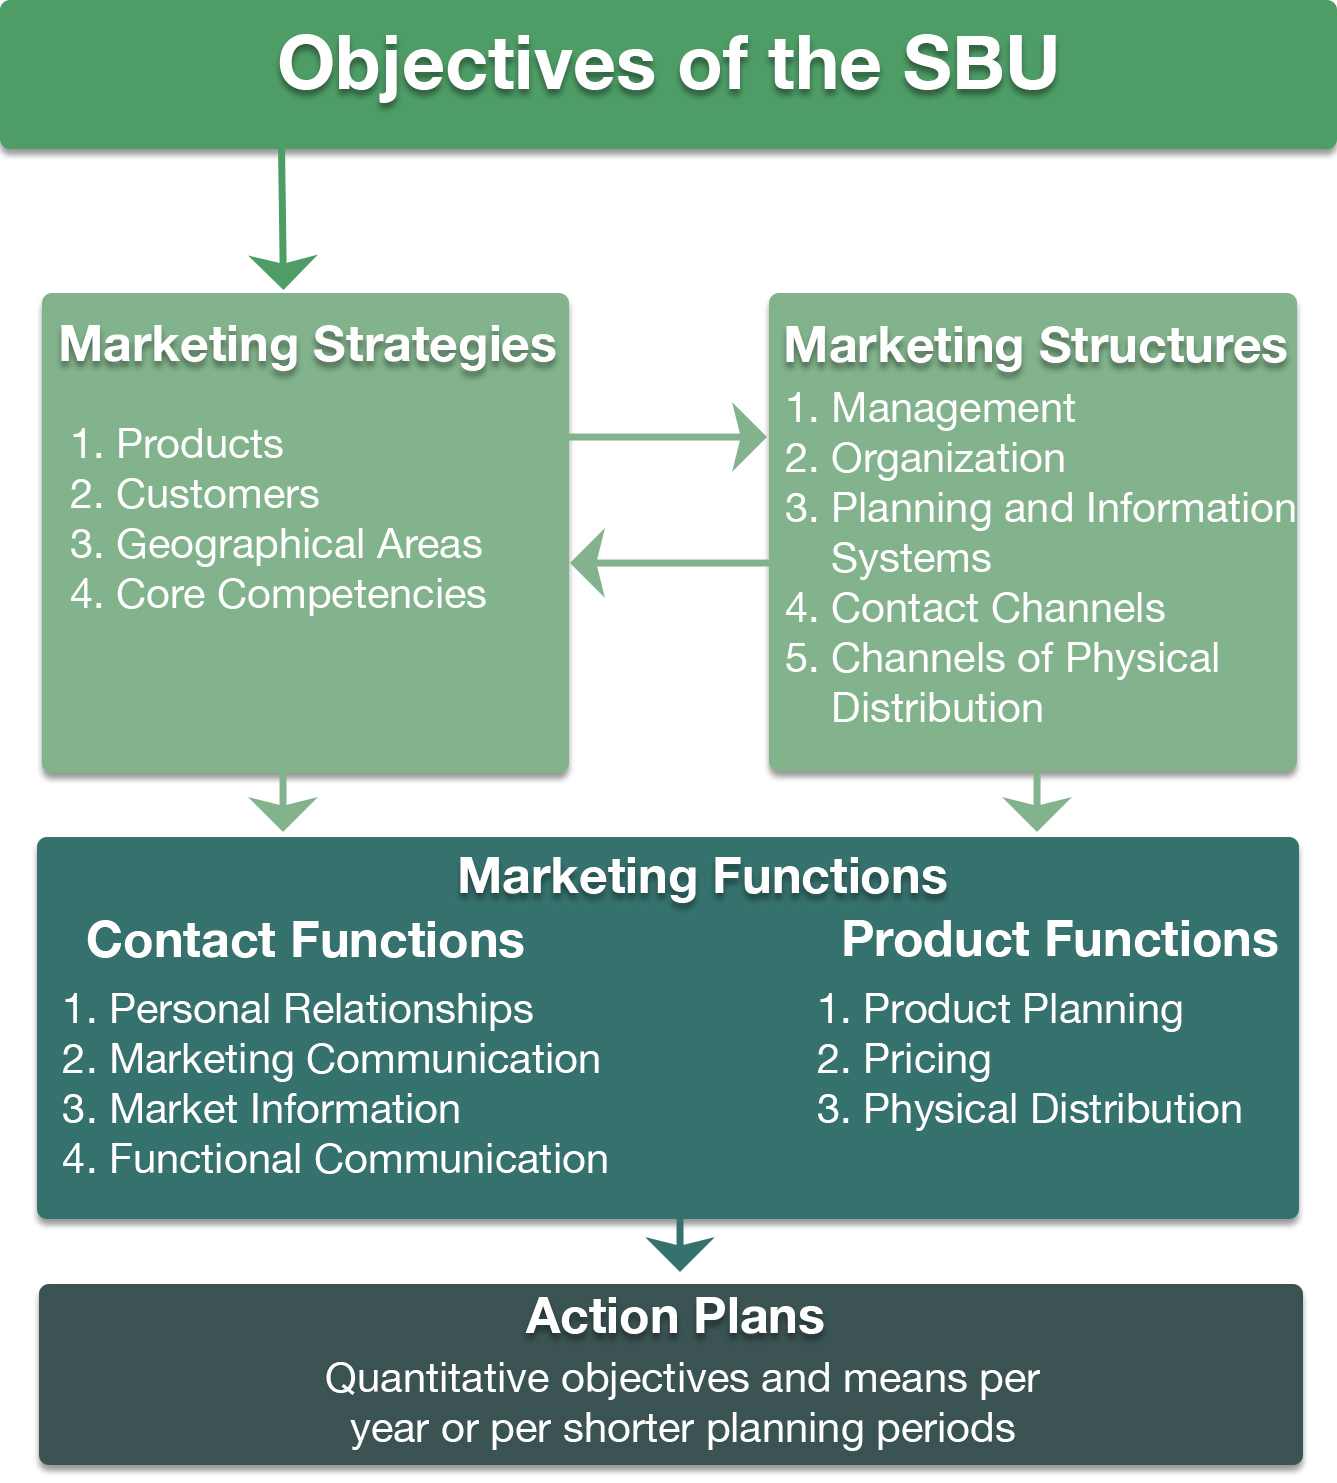 Integrated Model of Marketing and Planning